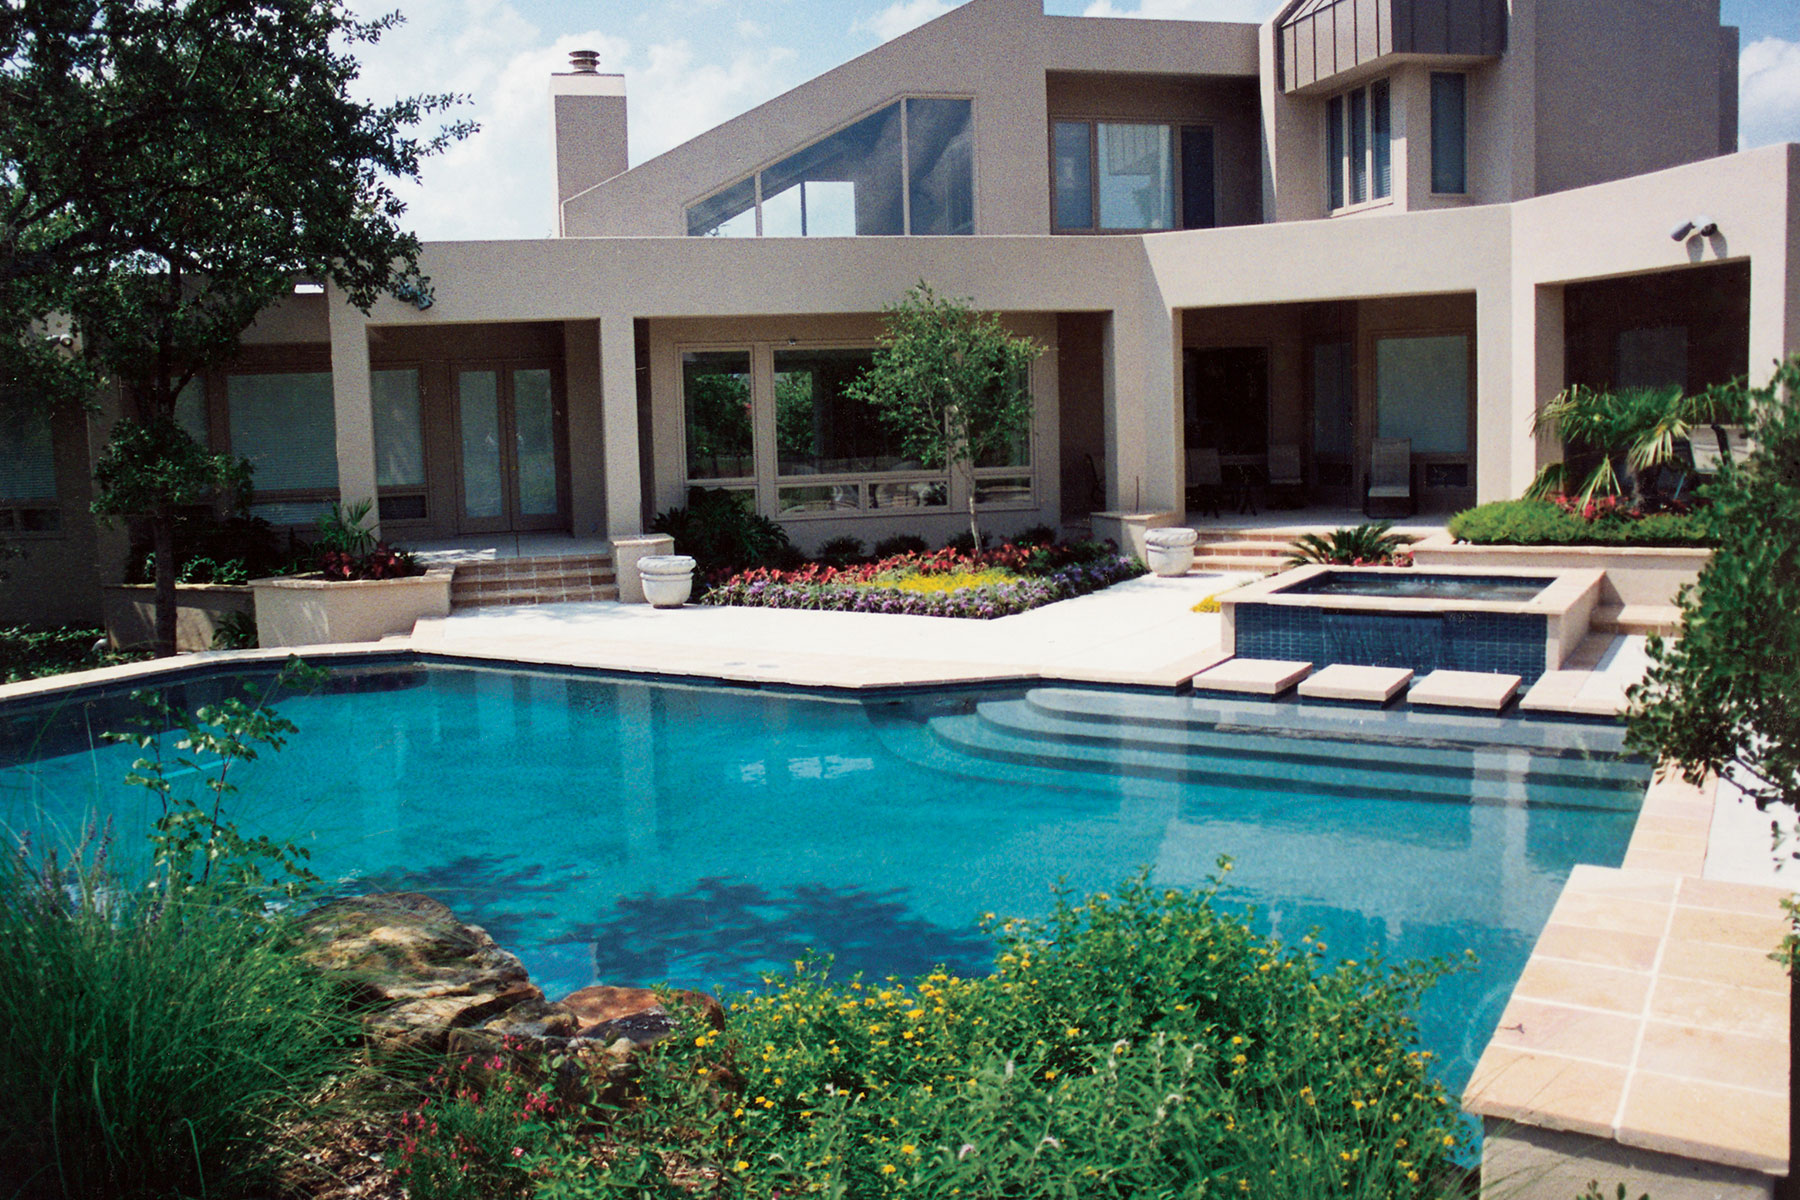 How much does a custom pool cost keith zars pools for Pool construction cost